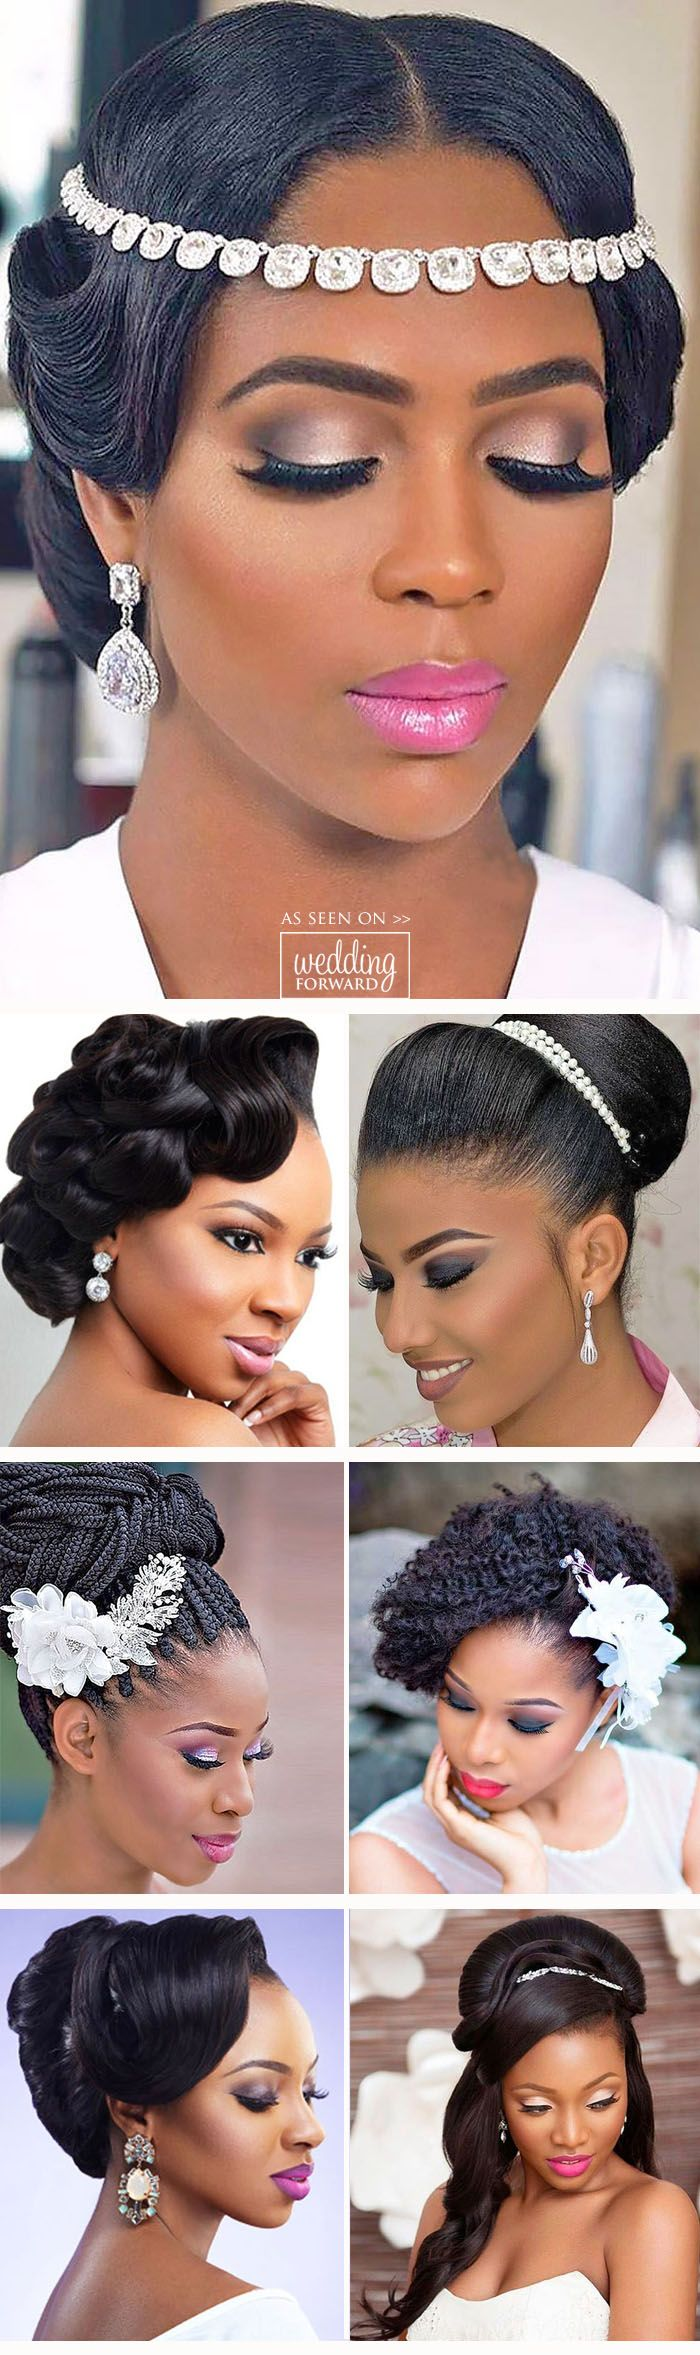 best hairstyles images on pinterest hair dos high fashion and